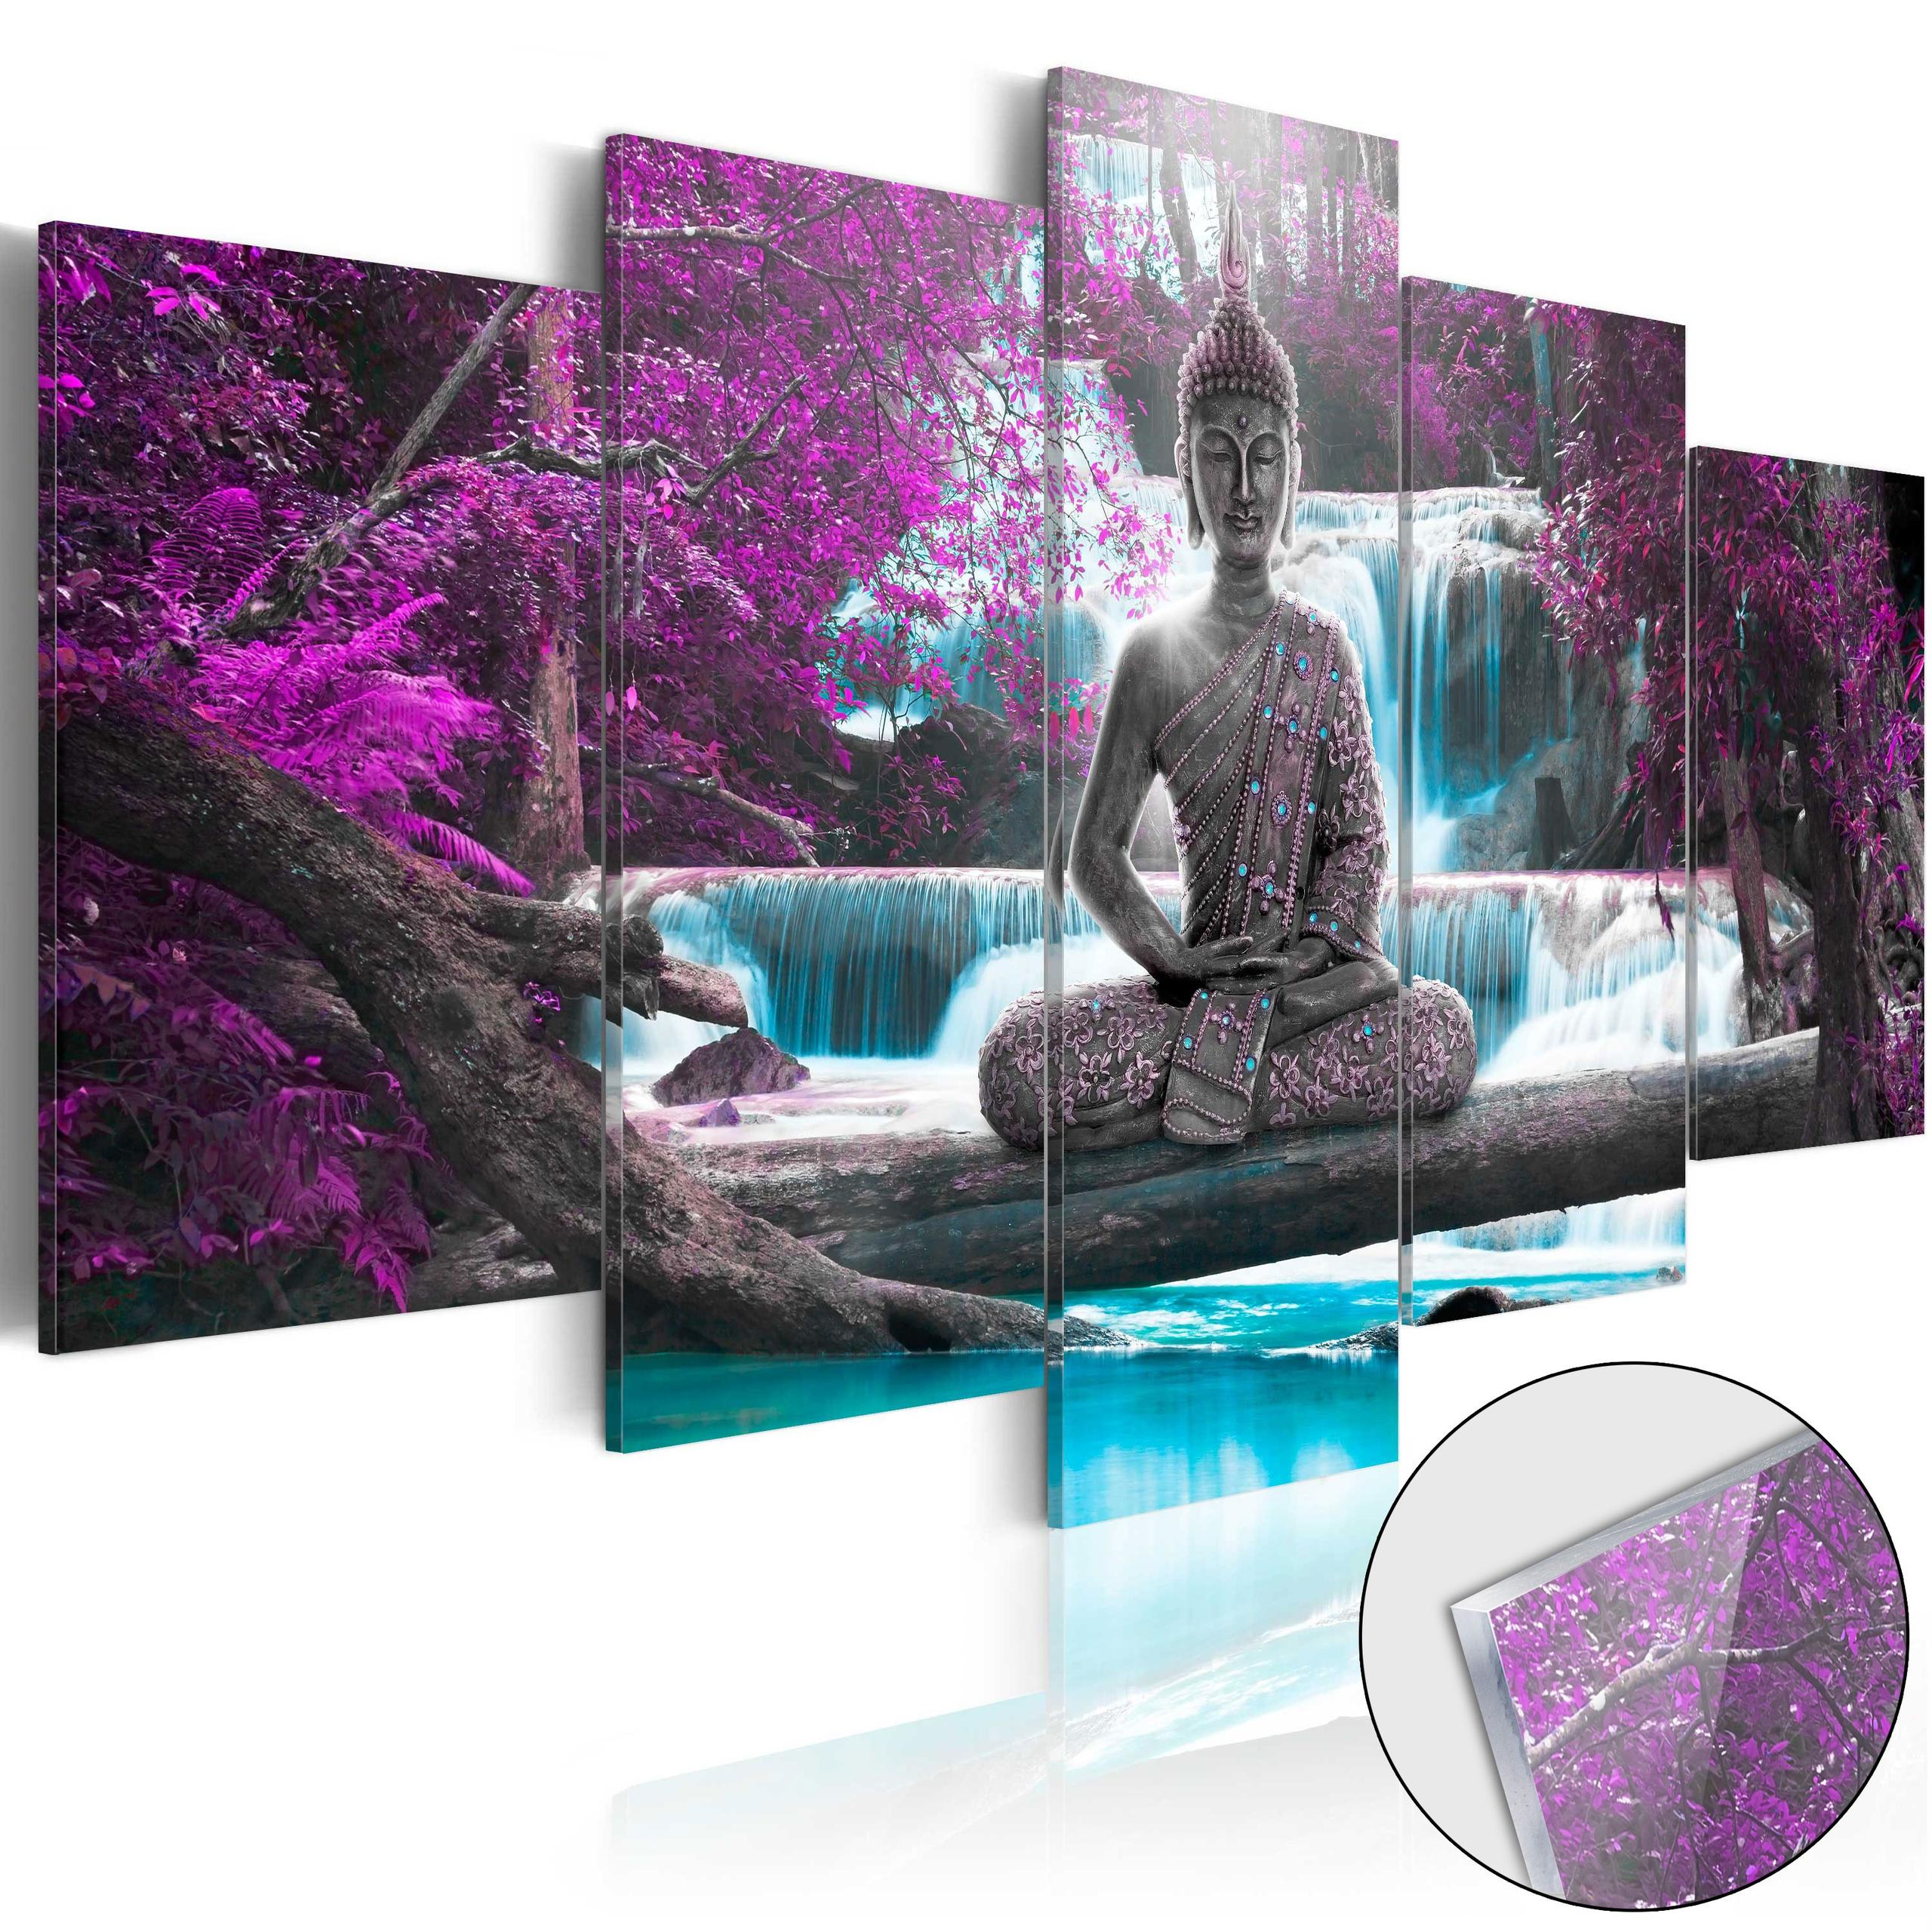 Quadro Su Vetro Acrilico - Waterfall And Buddha 100x50cm Erroi